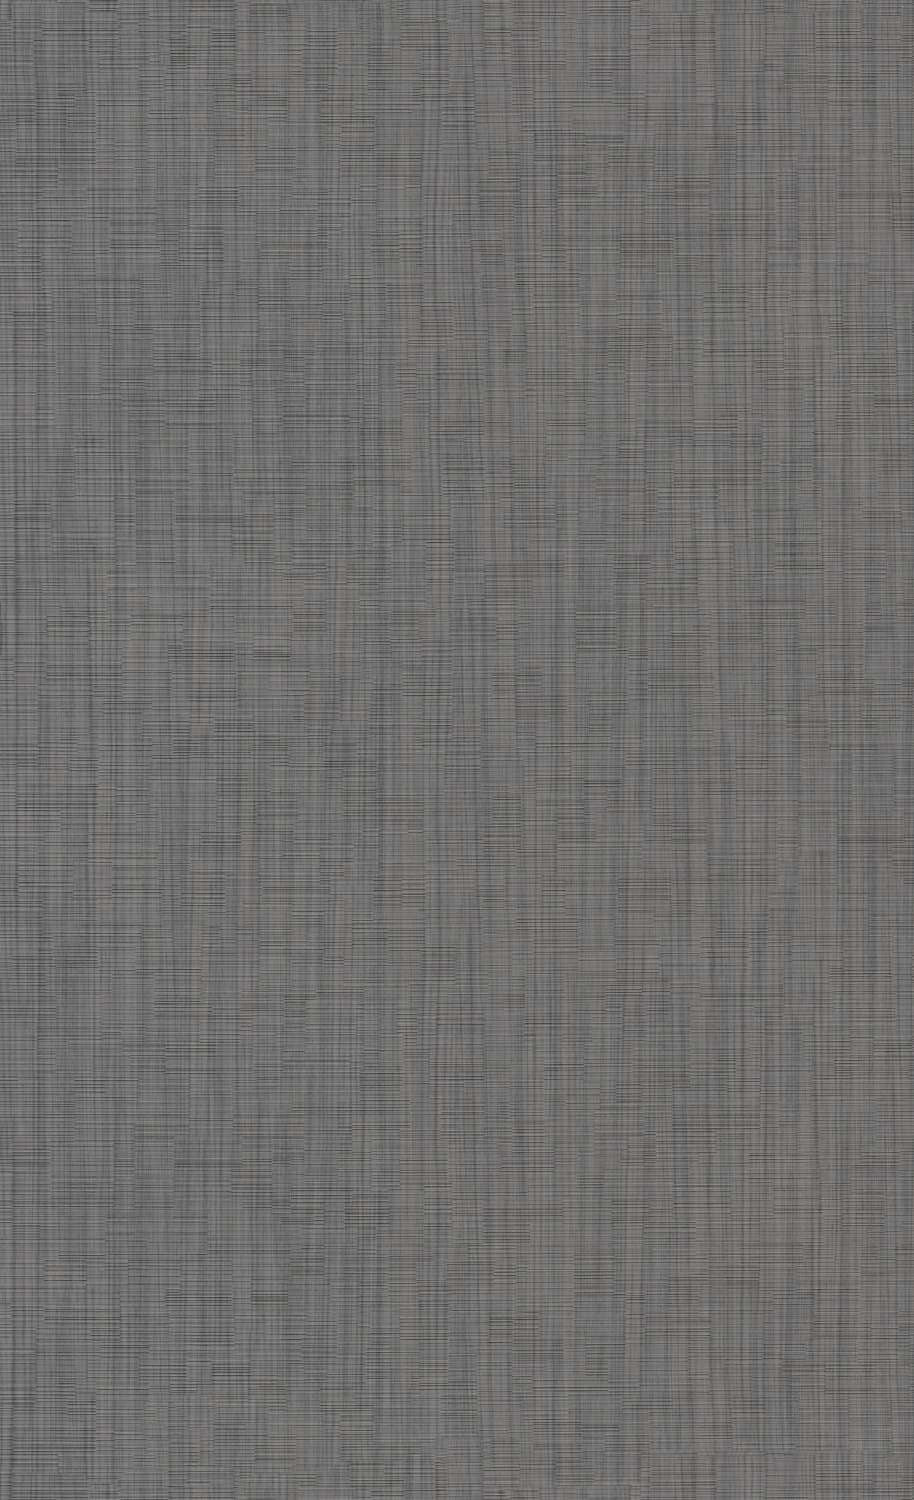 Black Rustic Wallpaper C7294  | Vinyl Contract Wallcovering